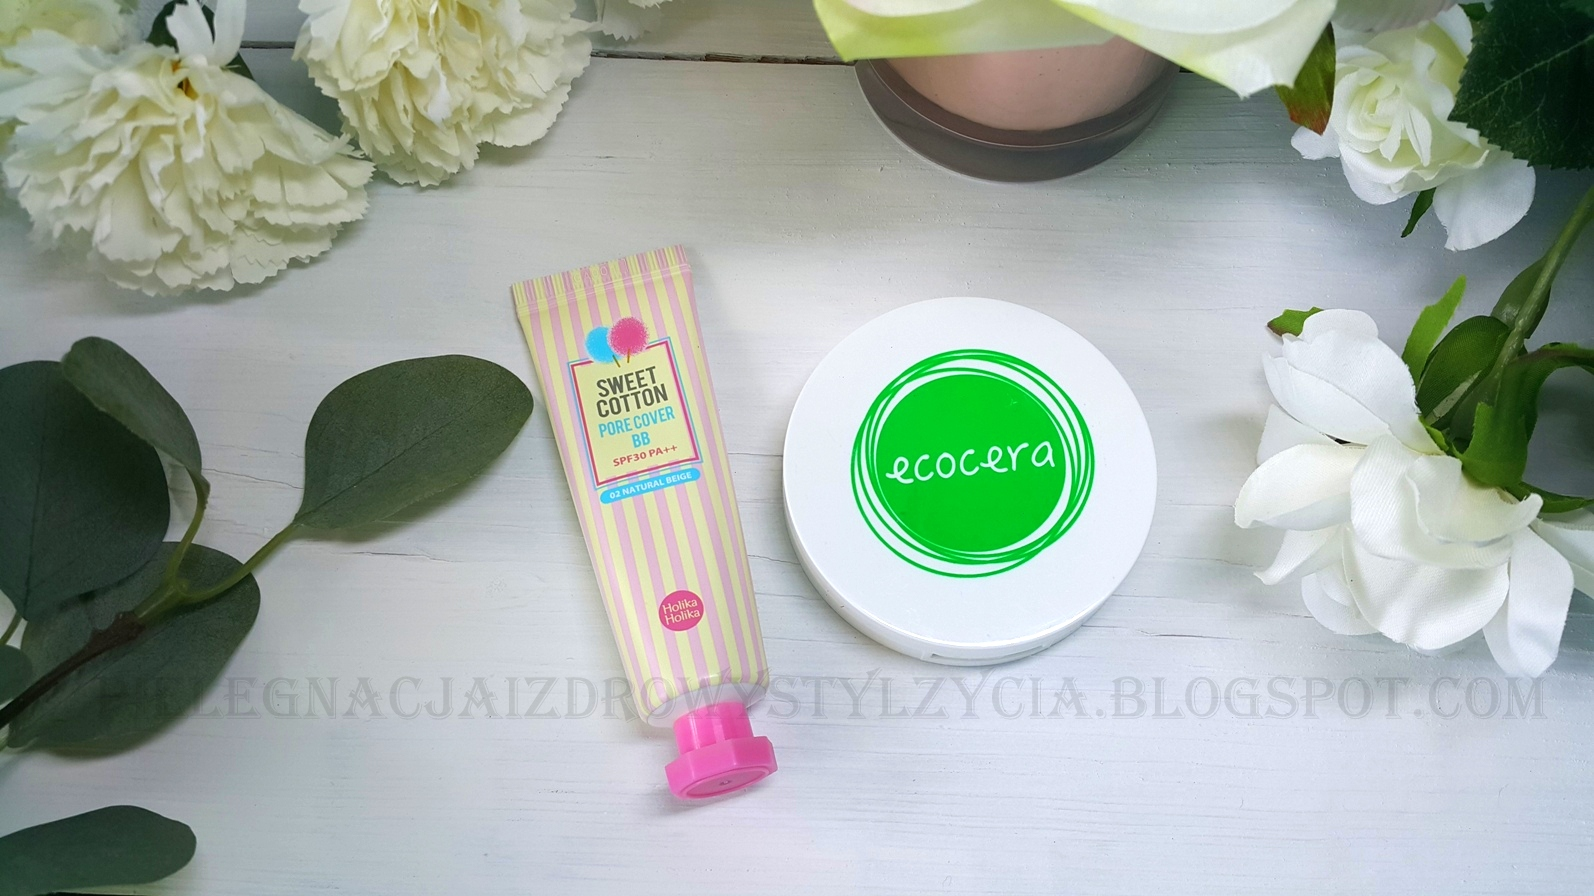 BB cream Sweet Cotton Holika Holika i puder prasowany Ecocera